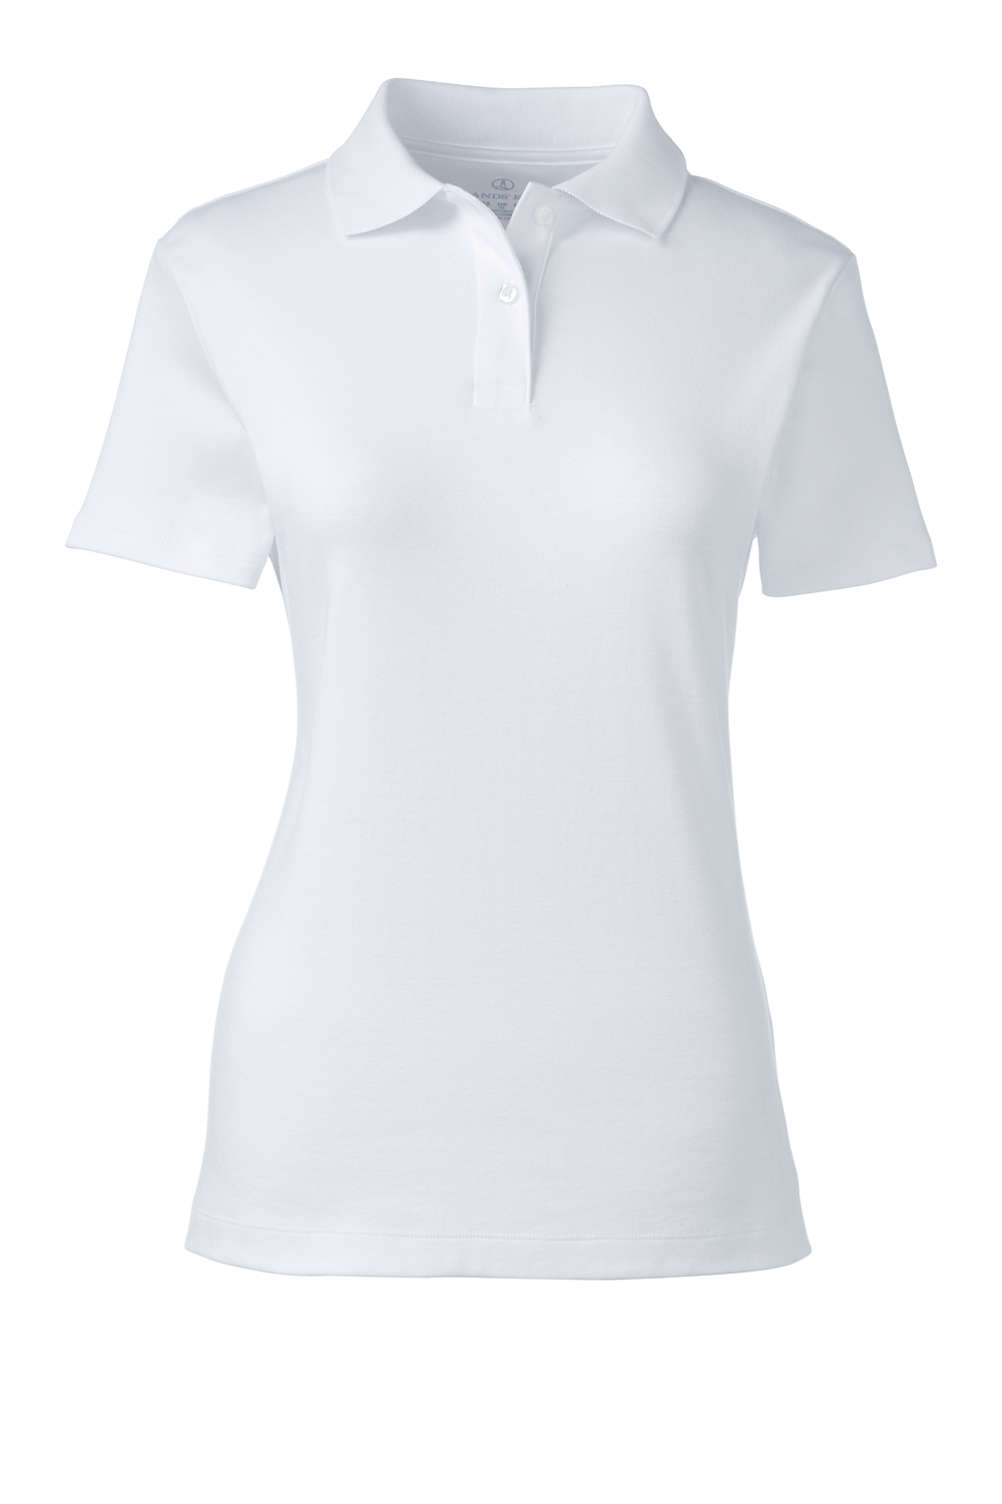 Women s Short Sleeve Fem Fit Interlock Polo Shirt from Lands  End f393e84896